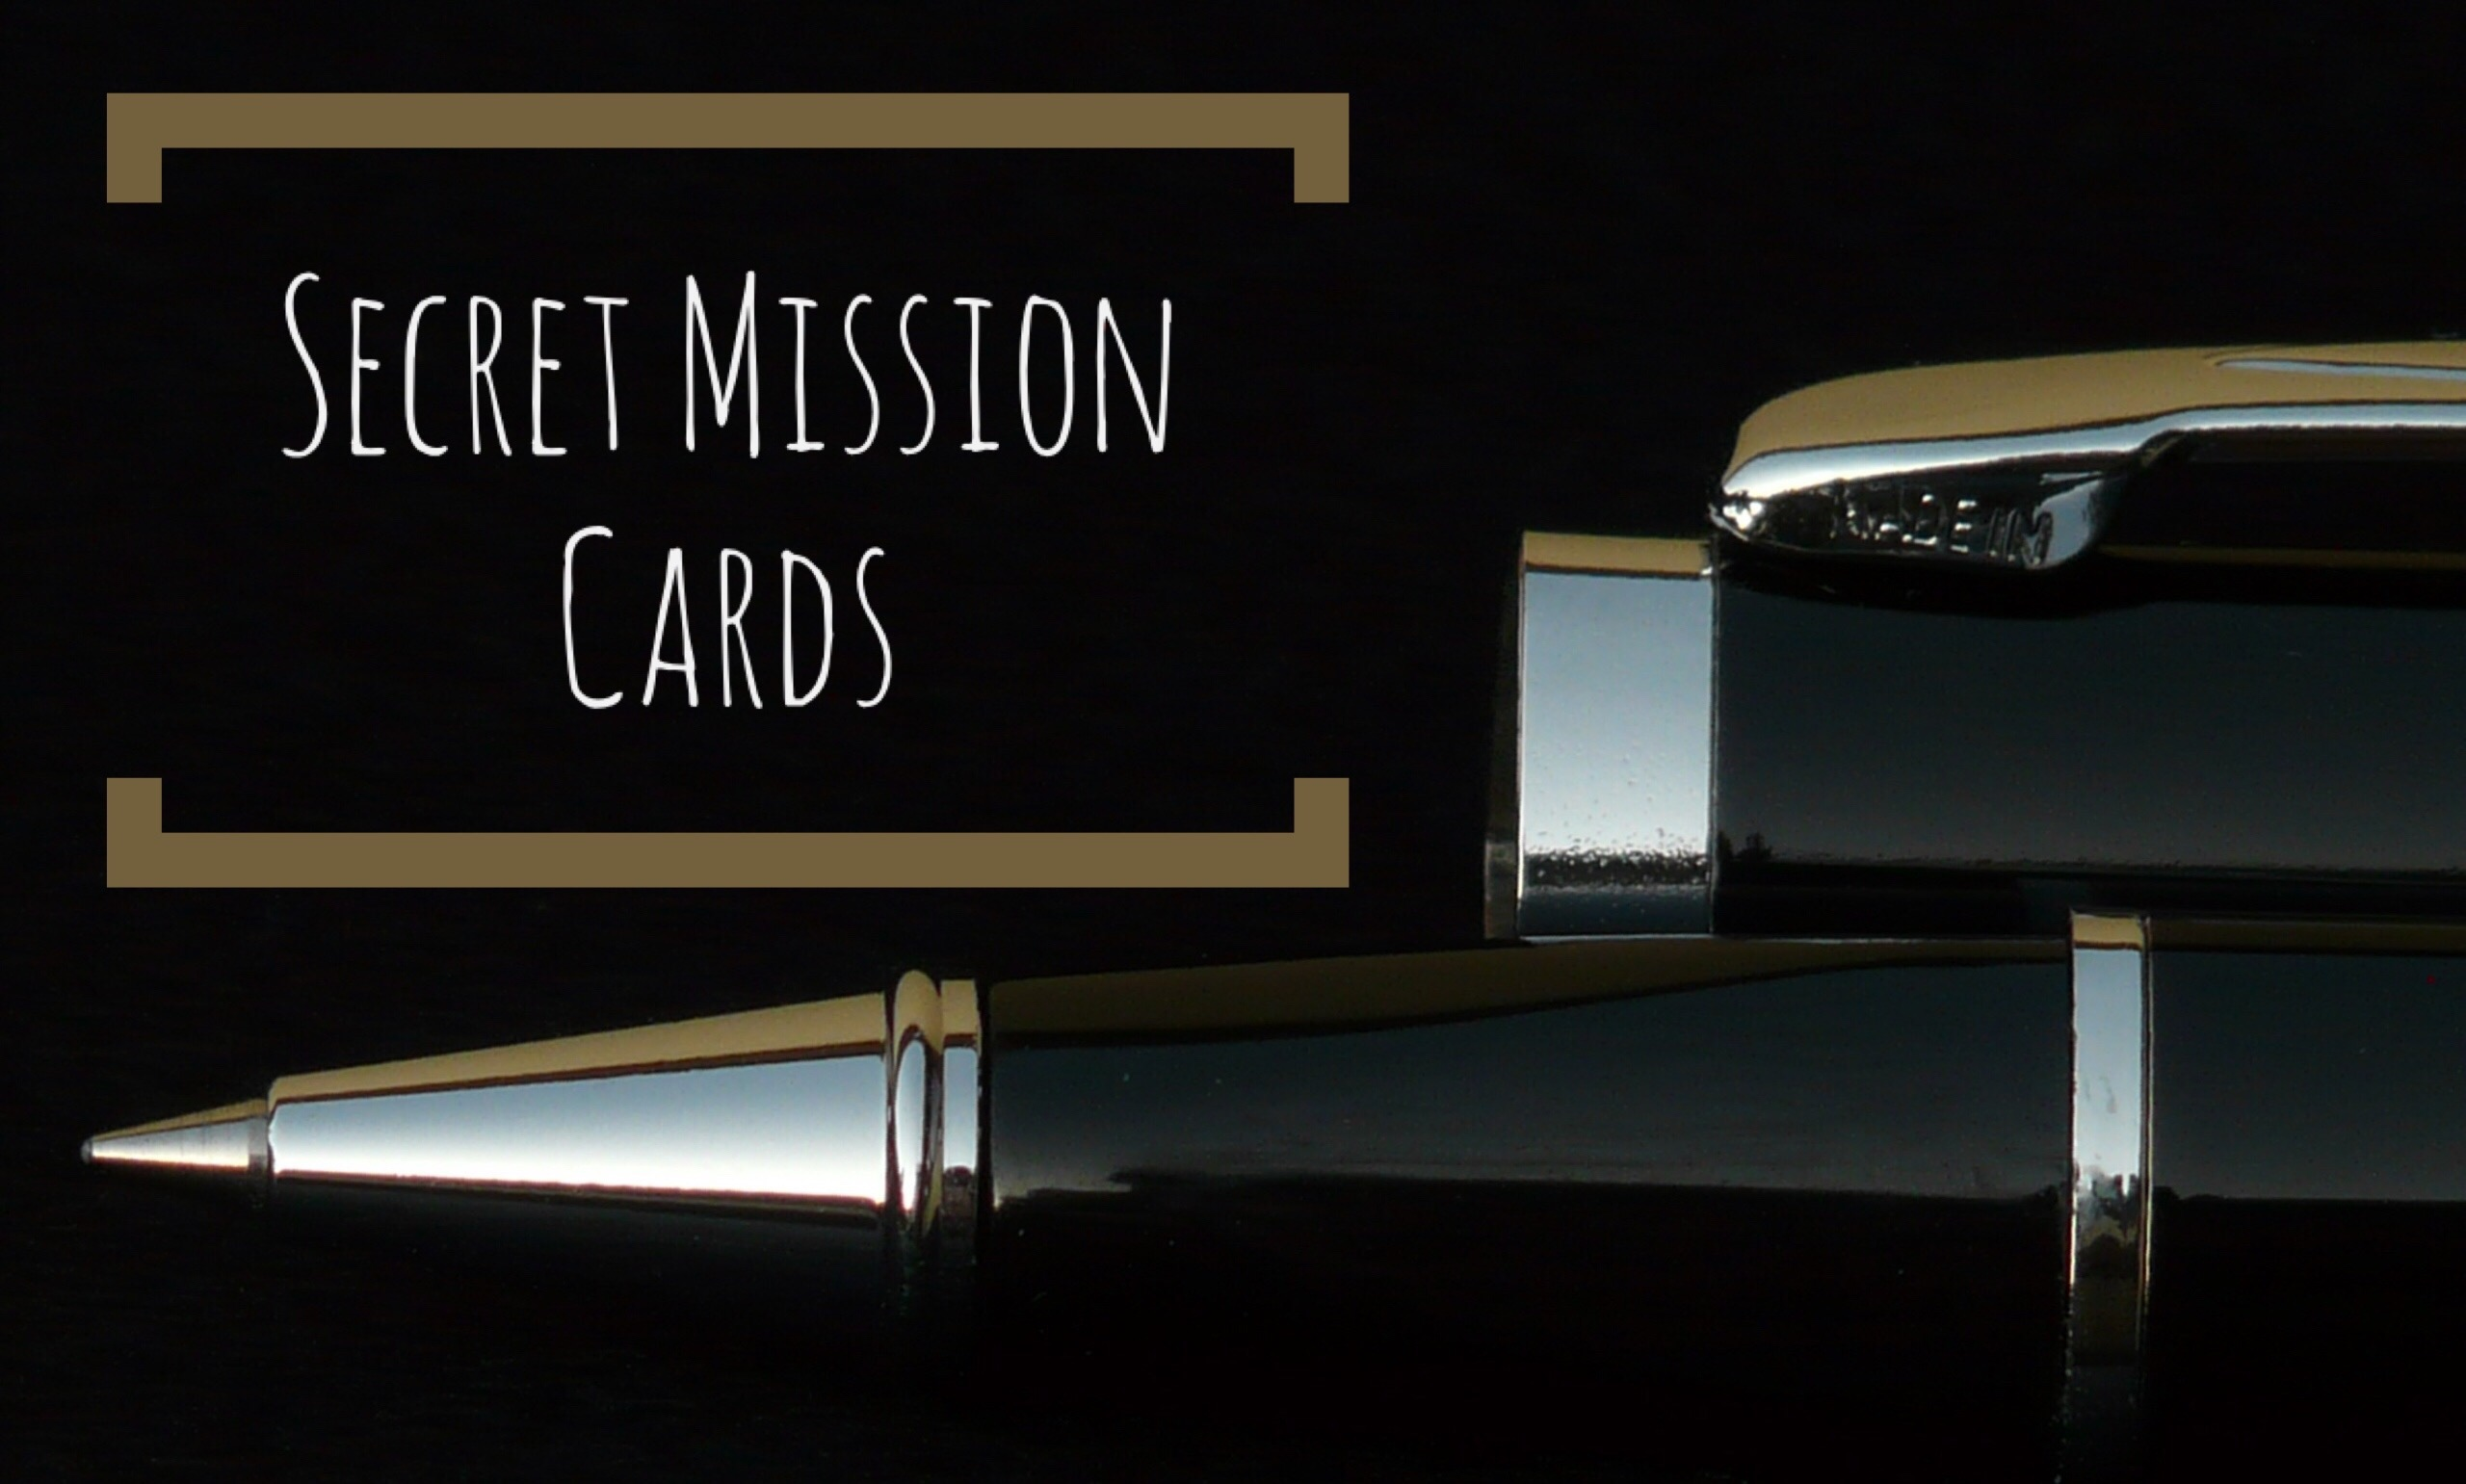 Secret Mission Cards